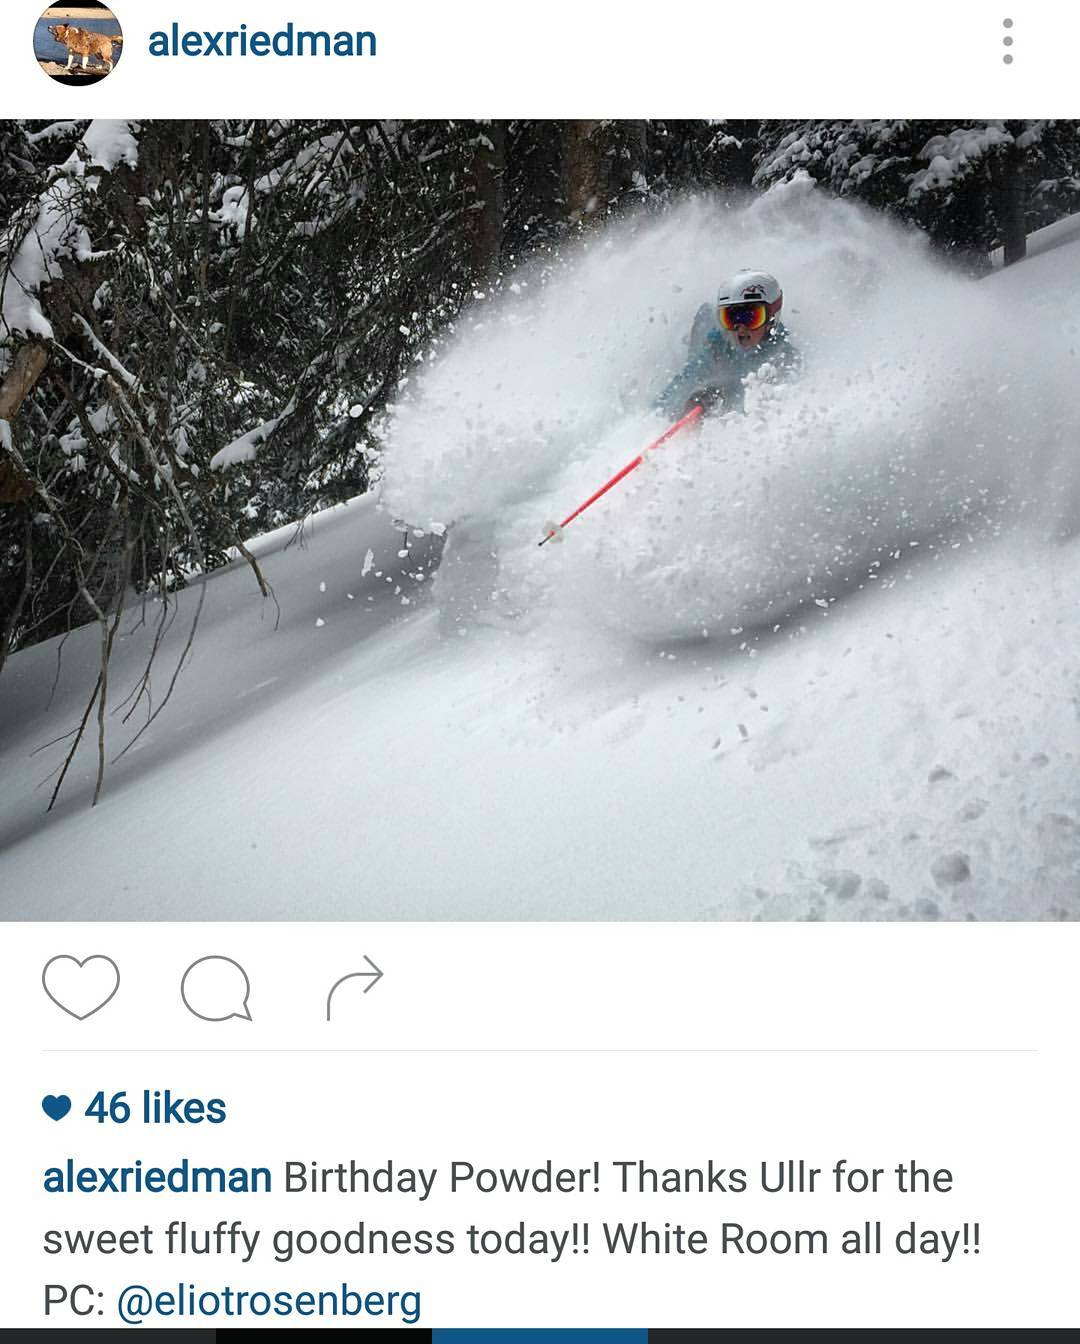 #regram and a happy belated birthday to miss @alexriedman  oh and congrats on your recent 5th place finish at Crystal mountain! Looks like you celebrated in style yesterday